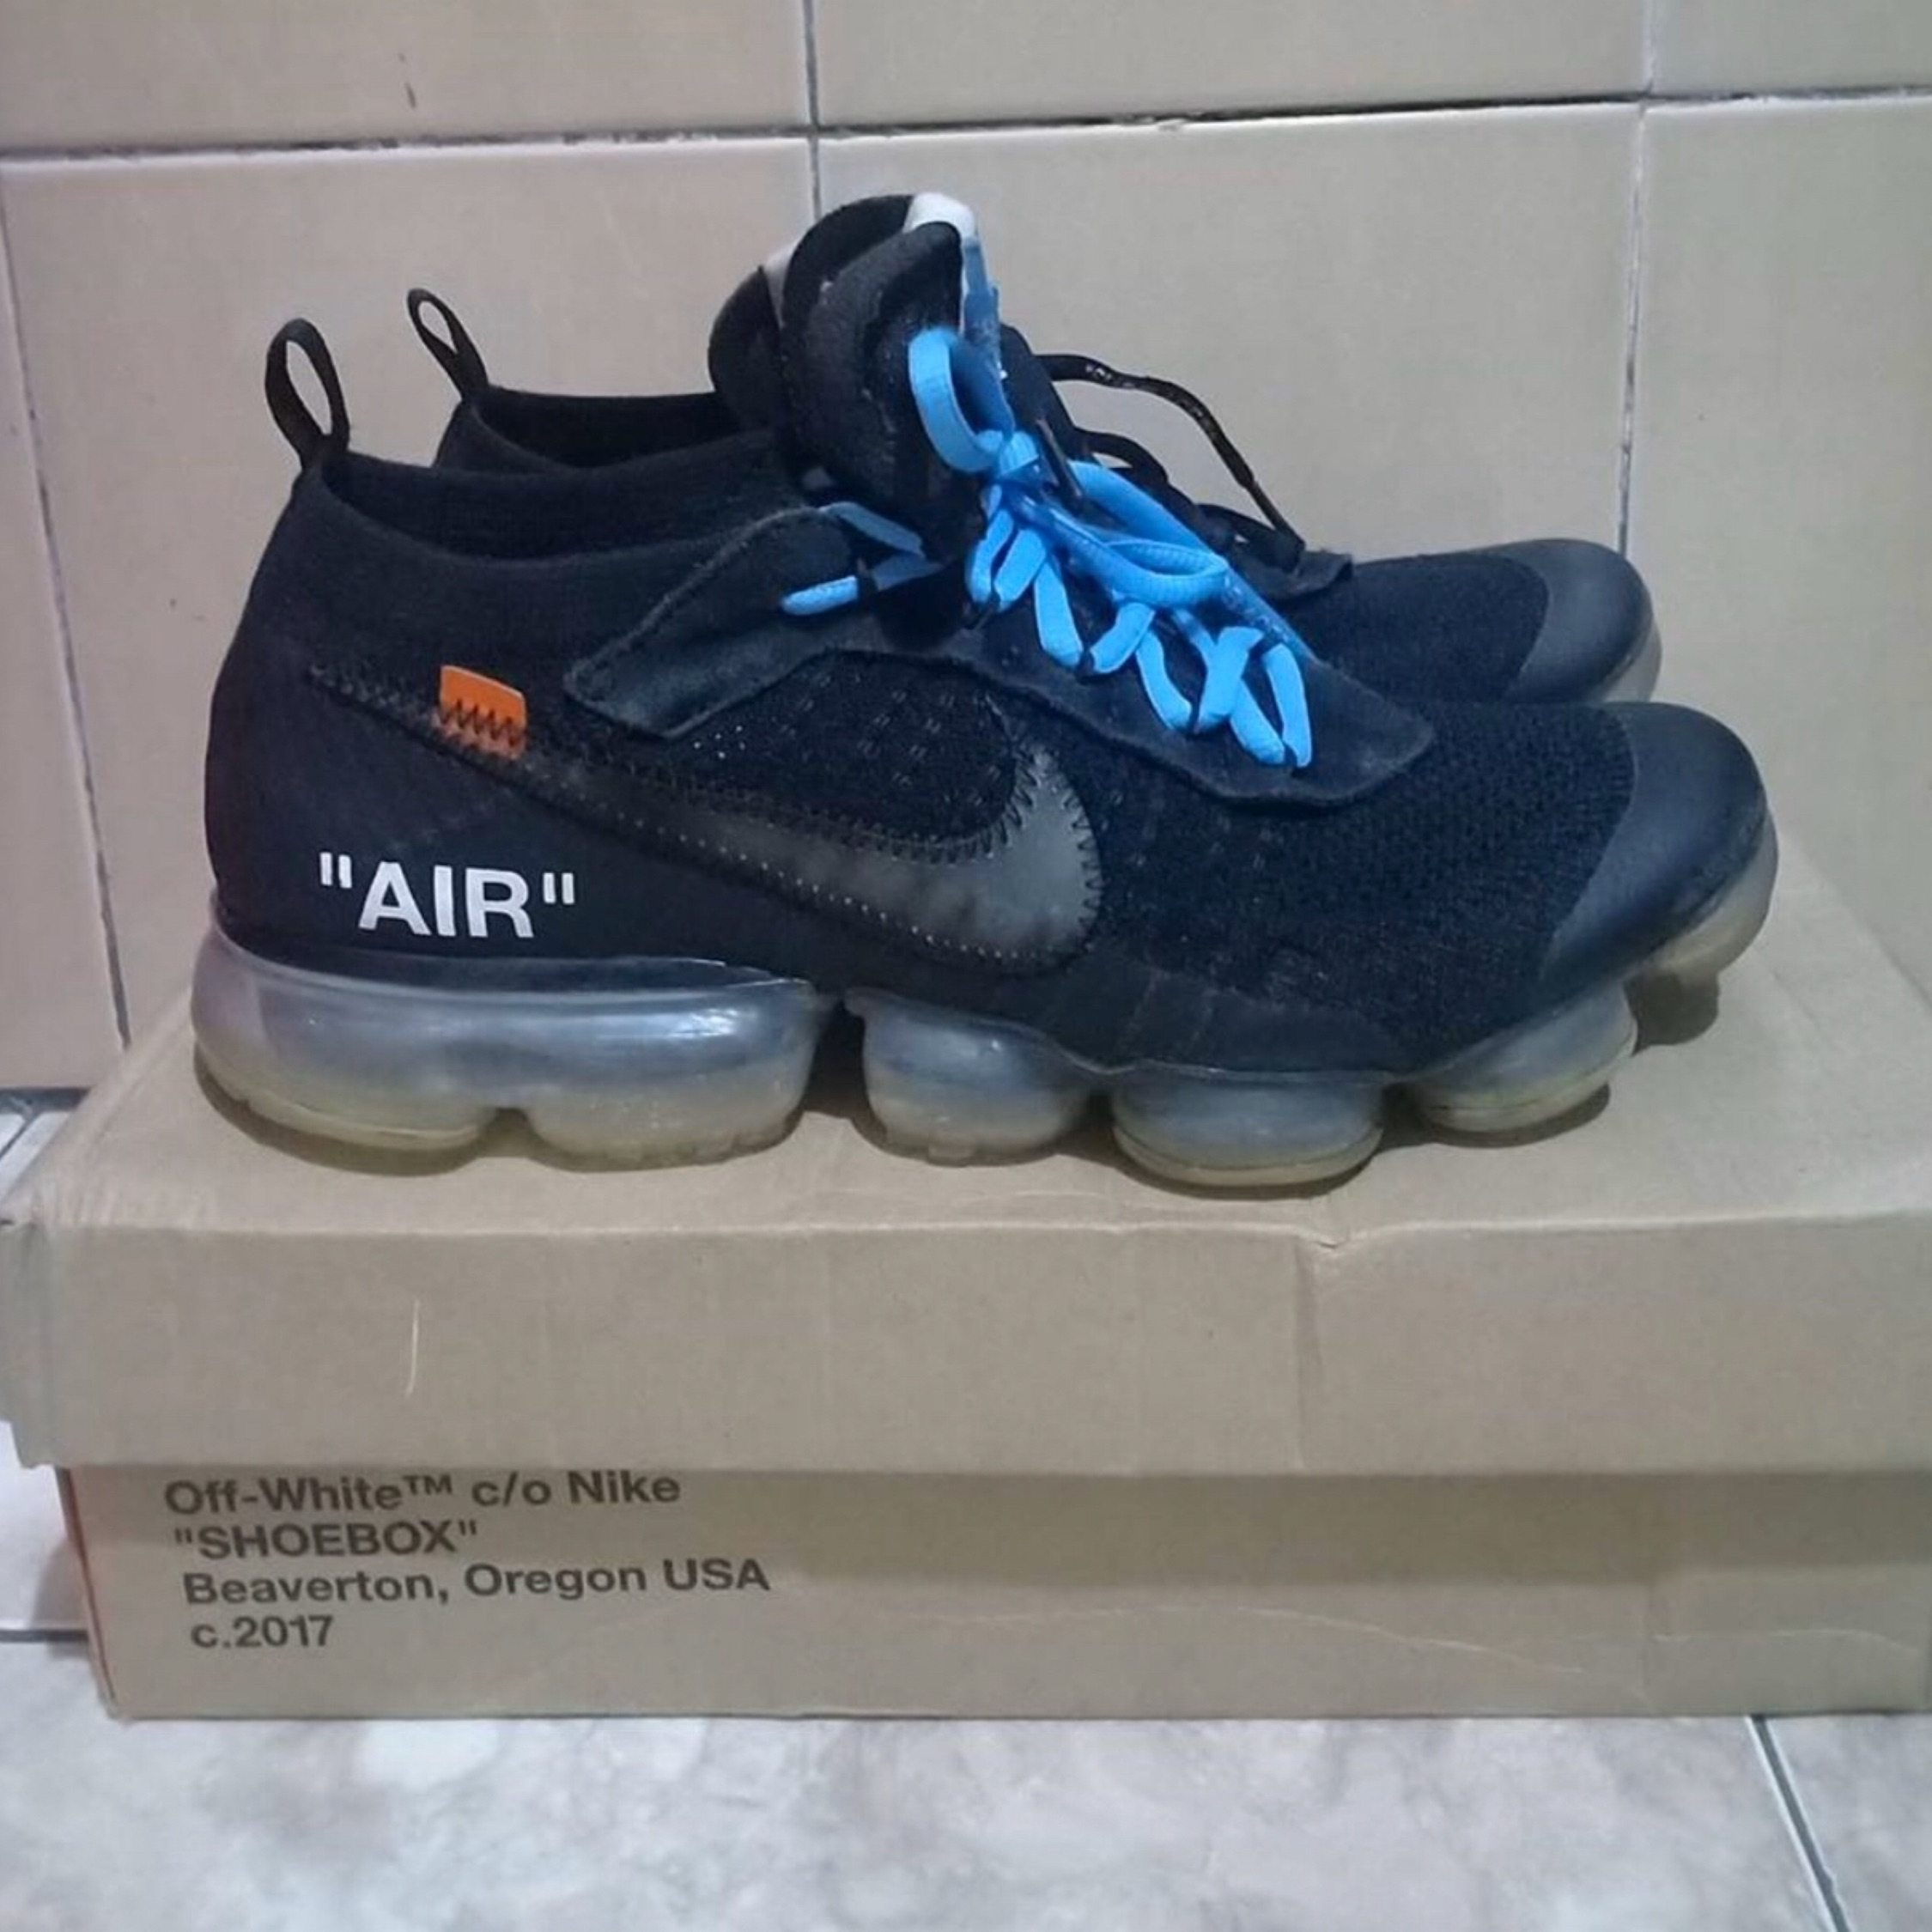 Fausses vapormax off white Vinted